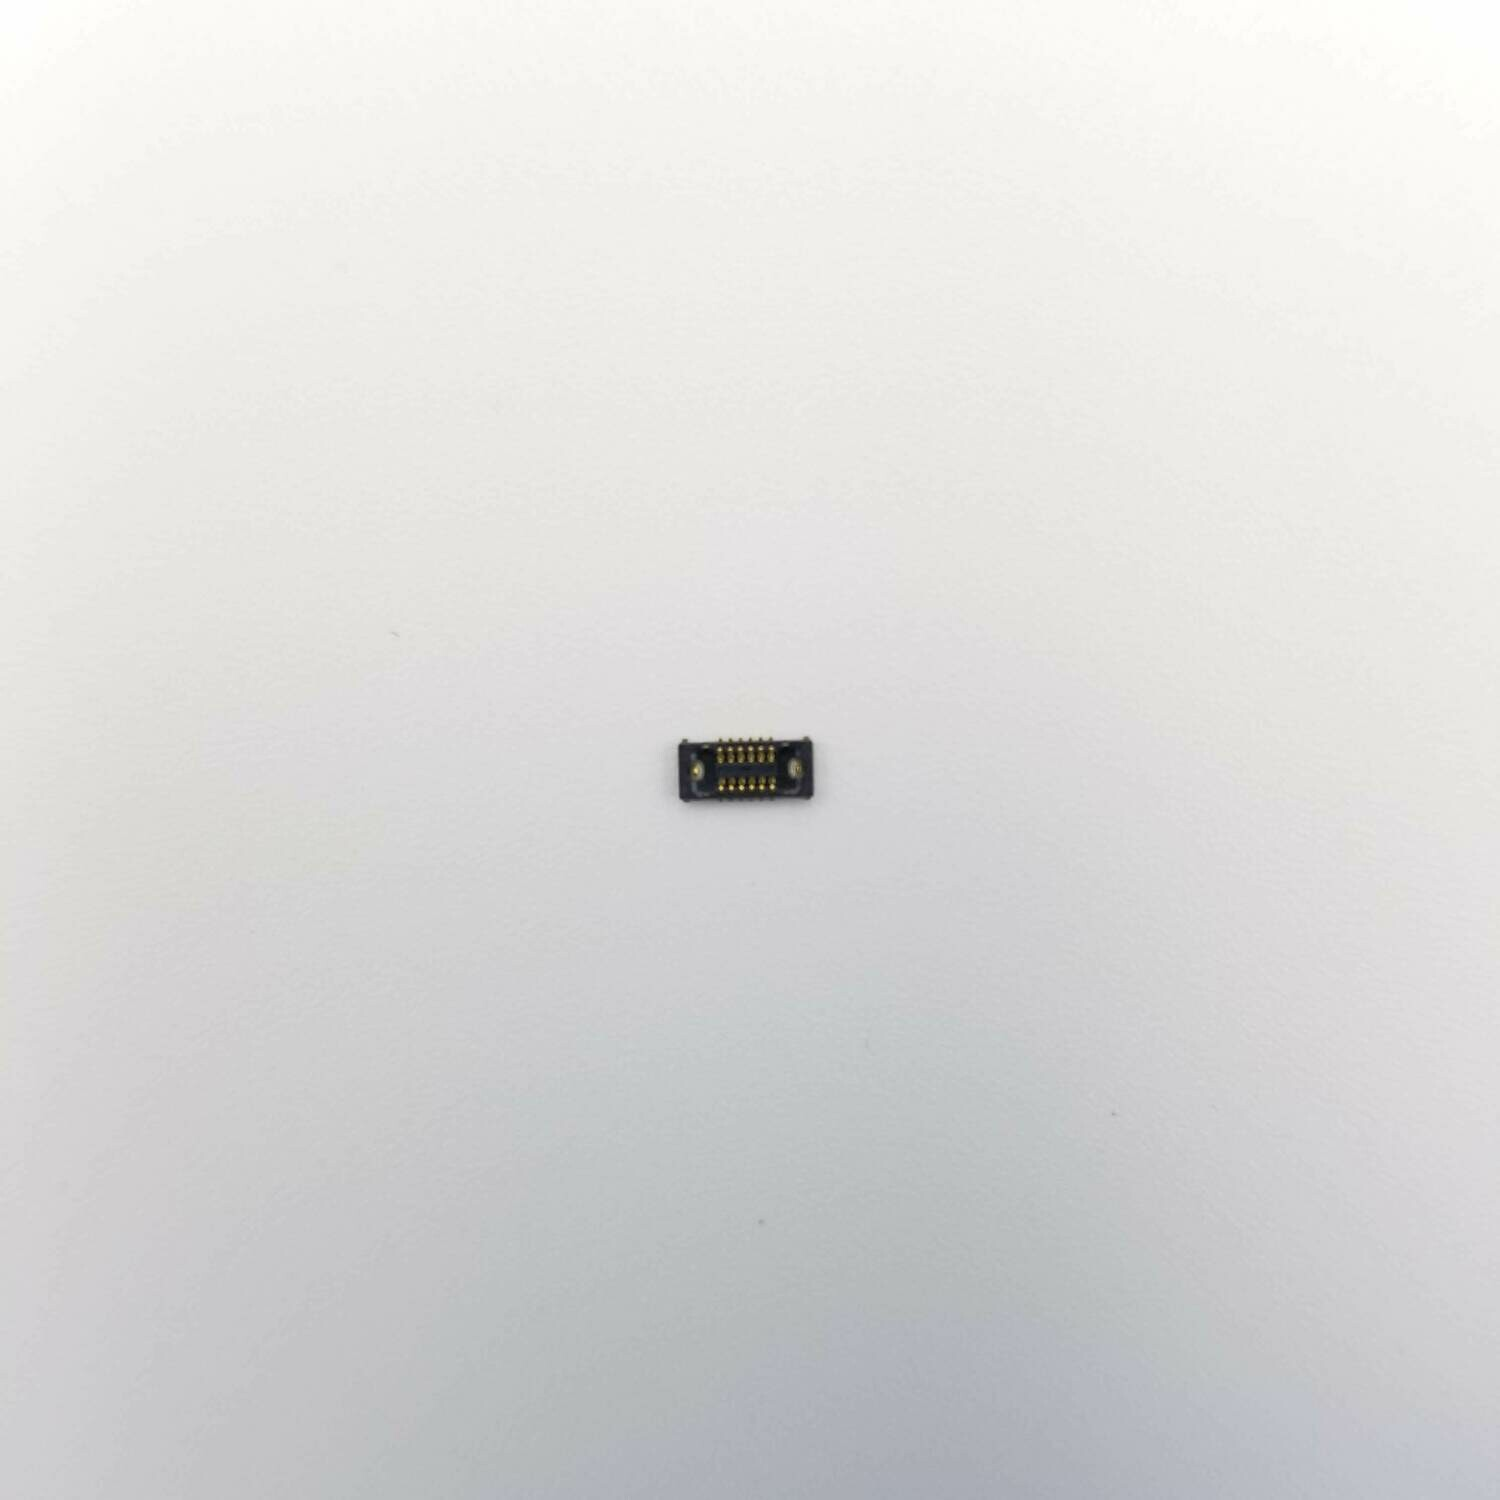 iPhone 6 / 6+ power button connector